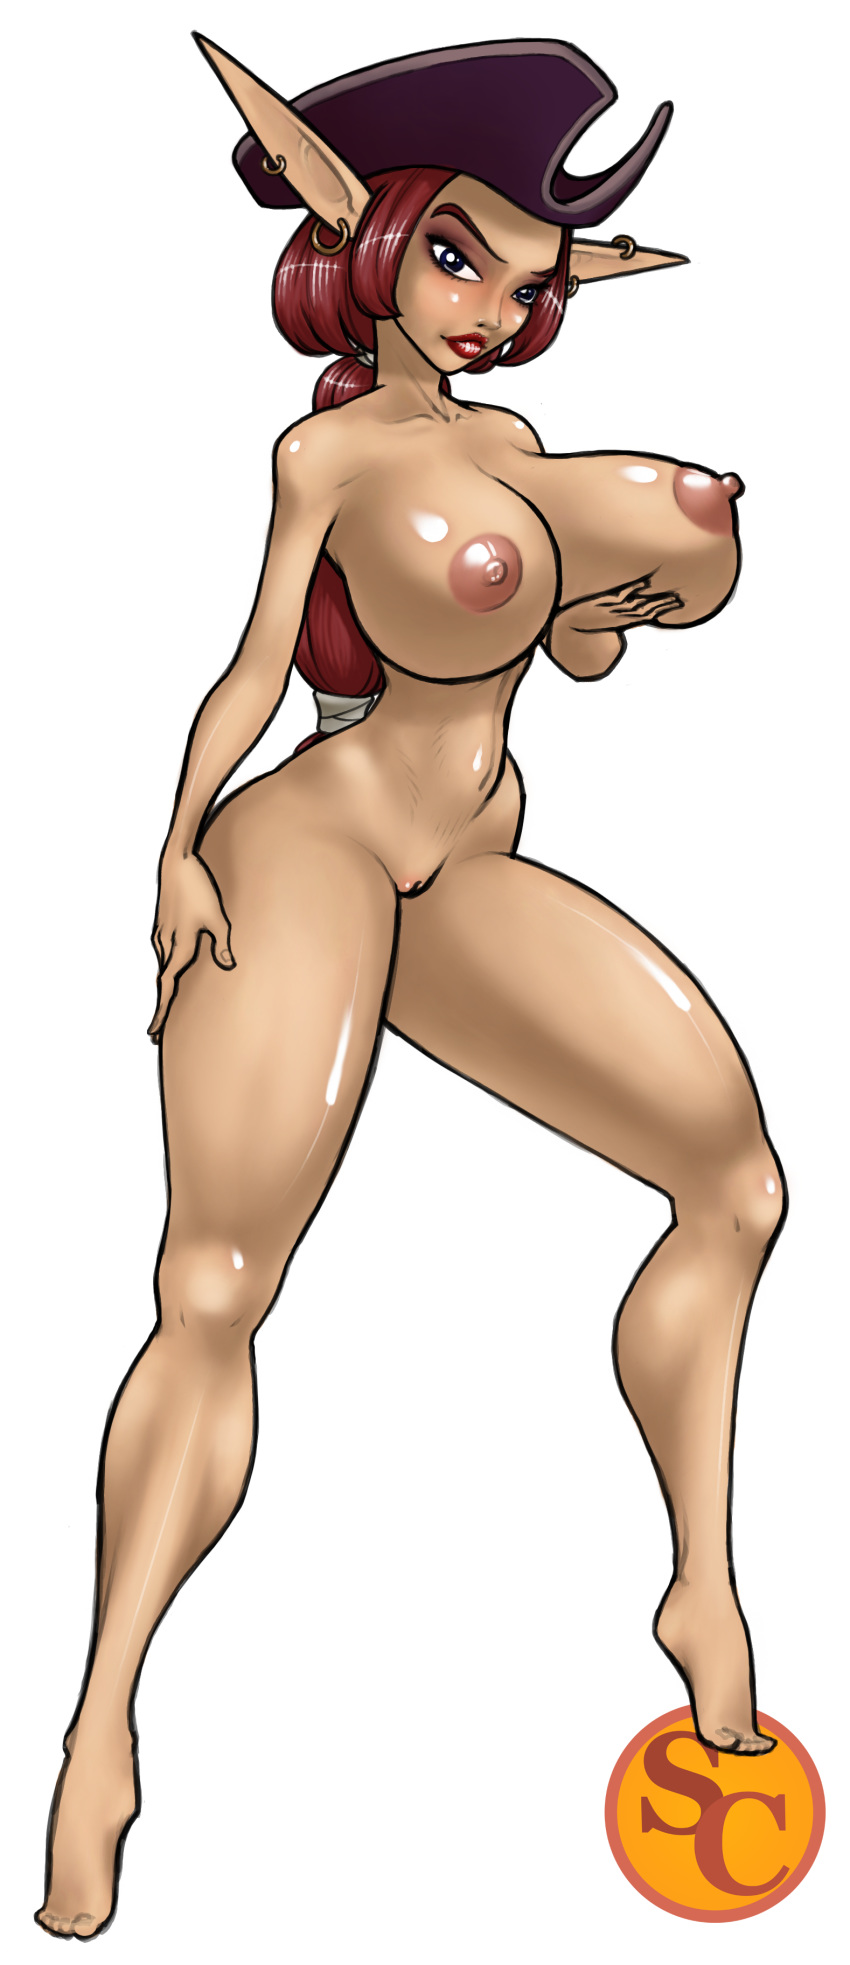 and jak daxter Metal gear solid v quiet nude